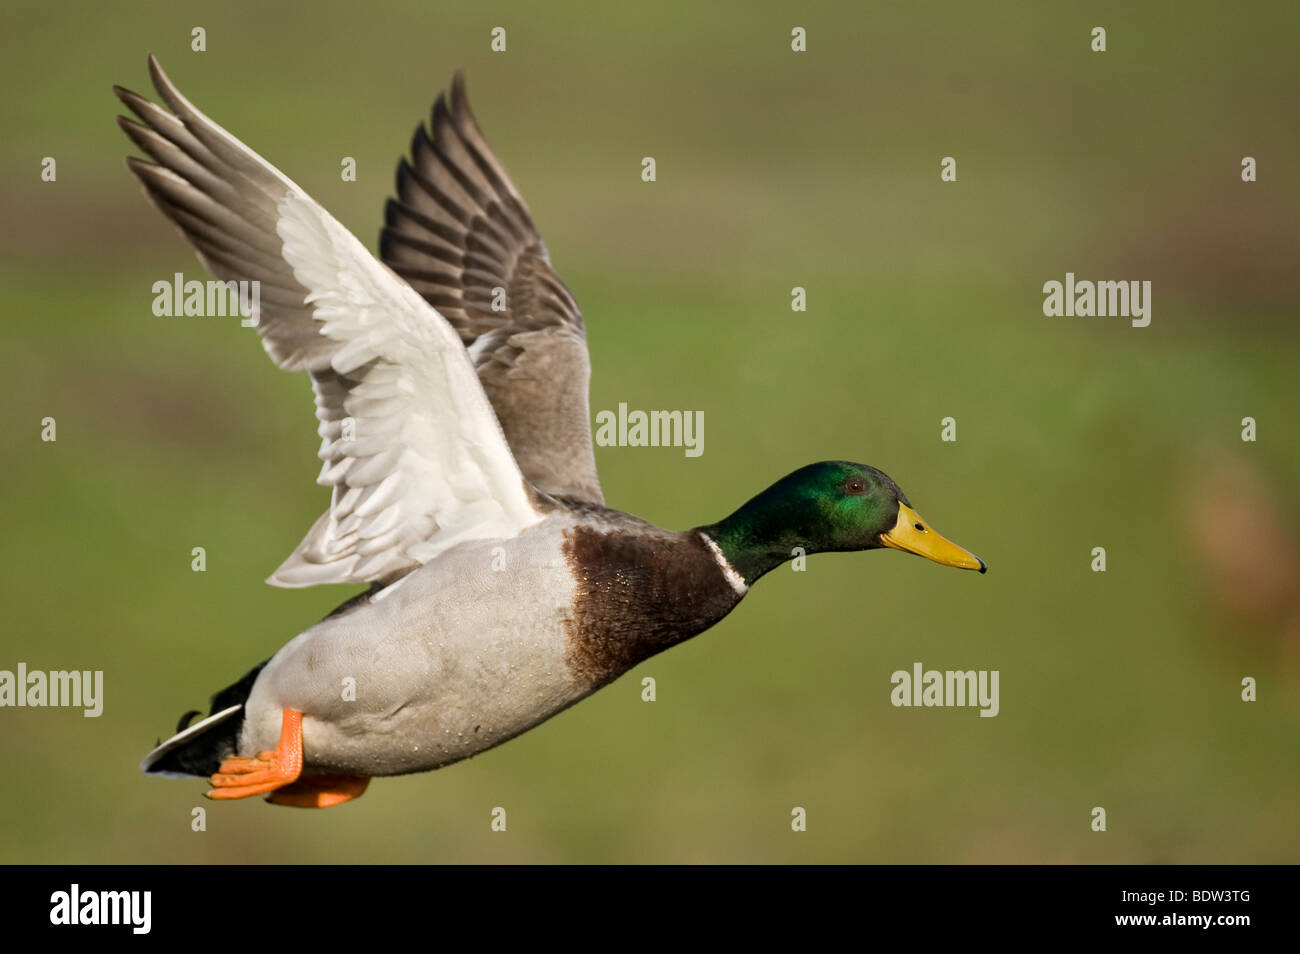 A flying duck - Stock Image